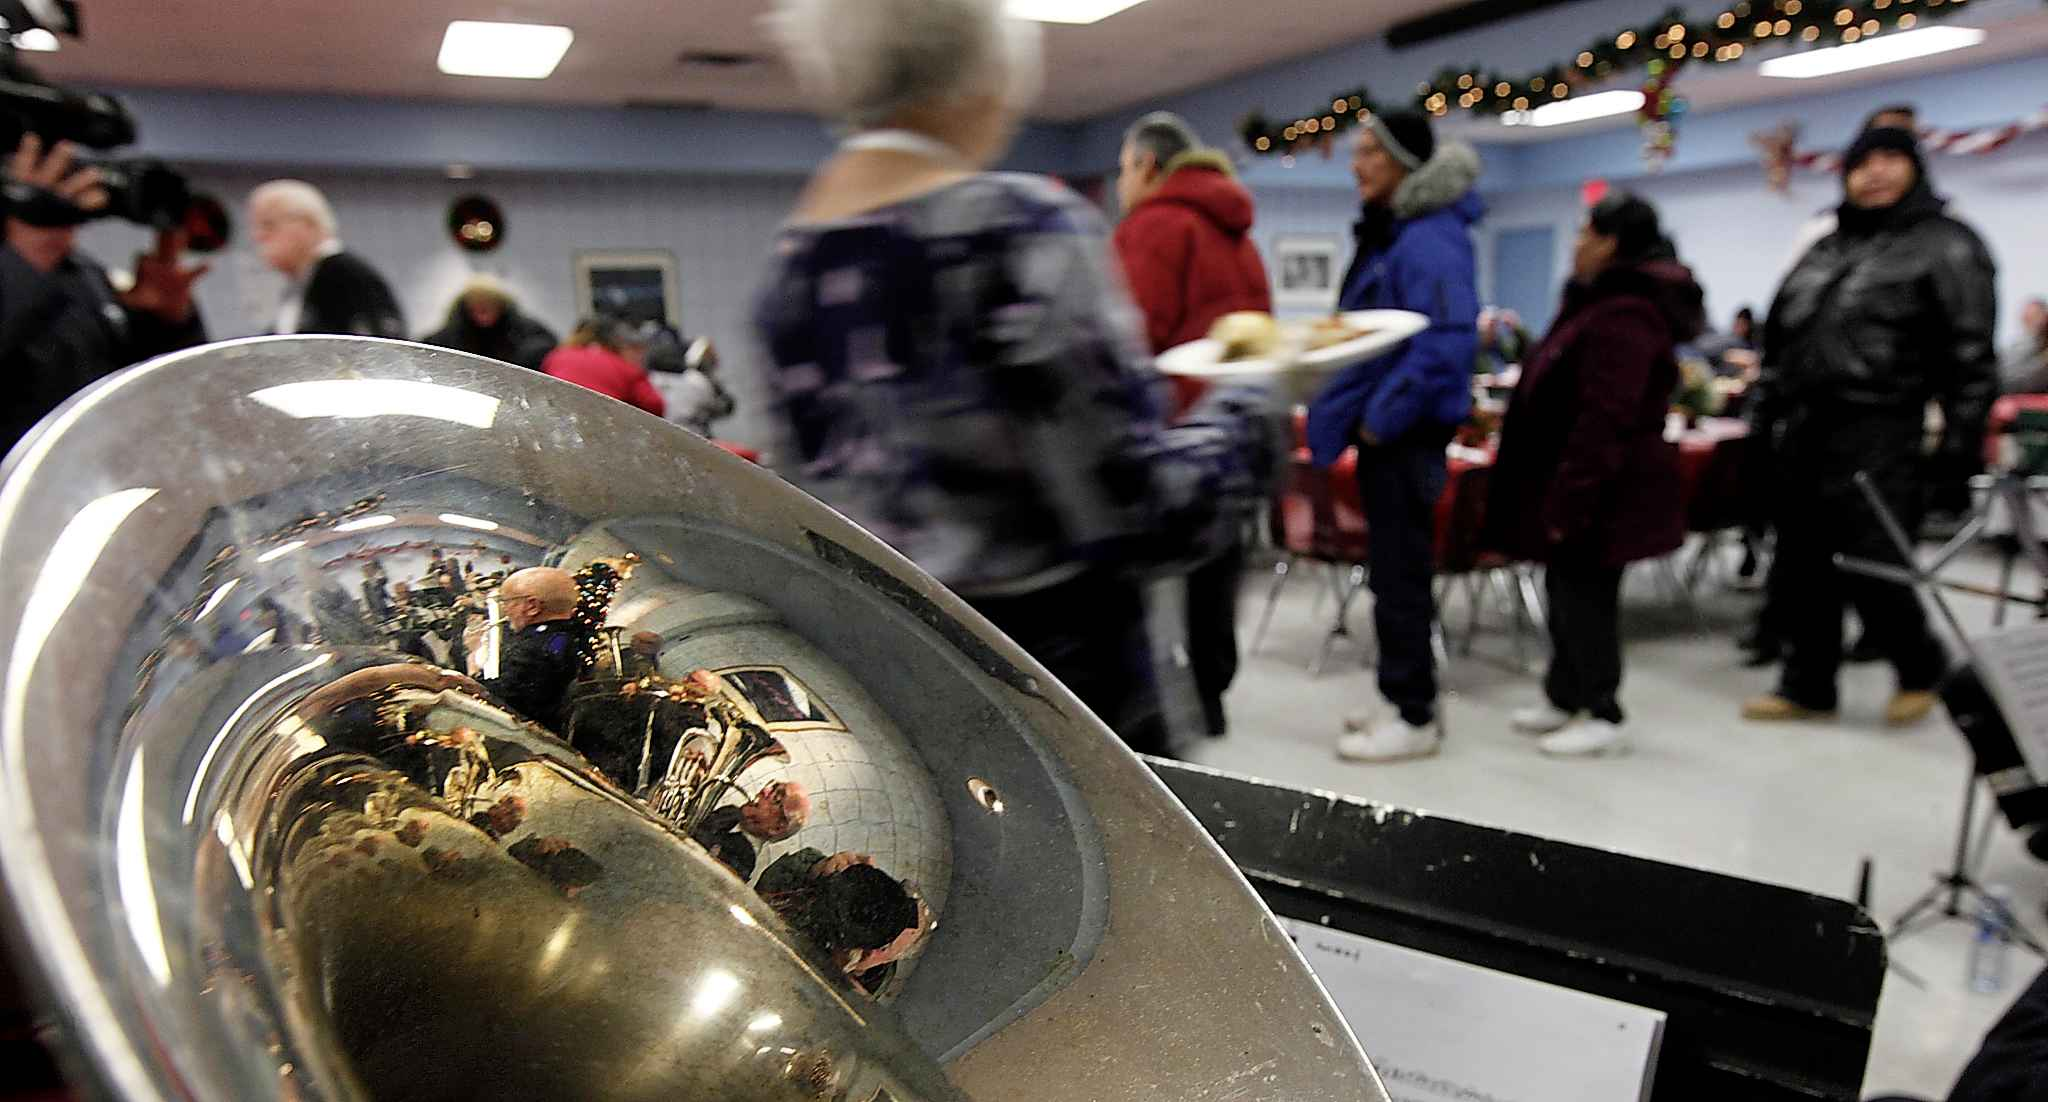 The Salvation Army's Centre of Hope hosts an annual Christmas feast. (Phil Hossack / Free Press files)